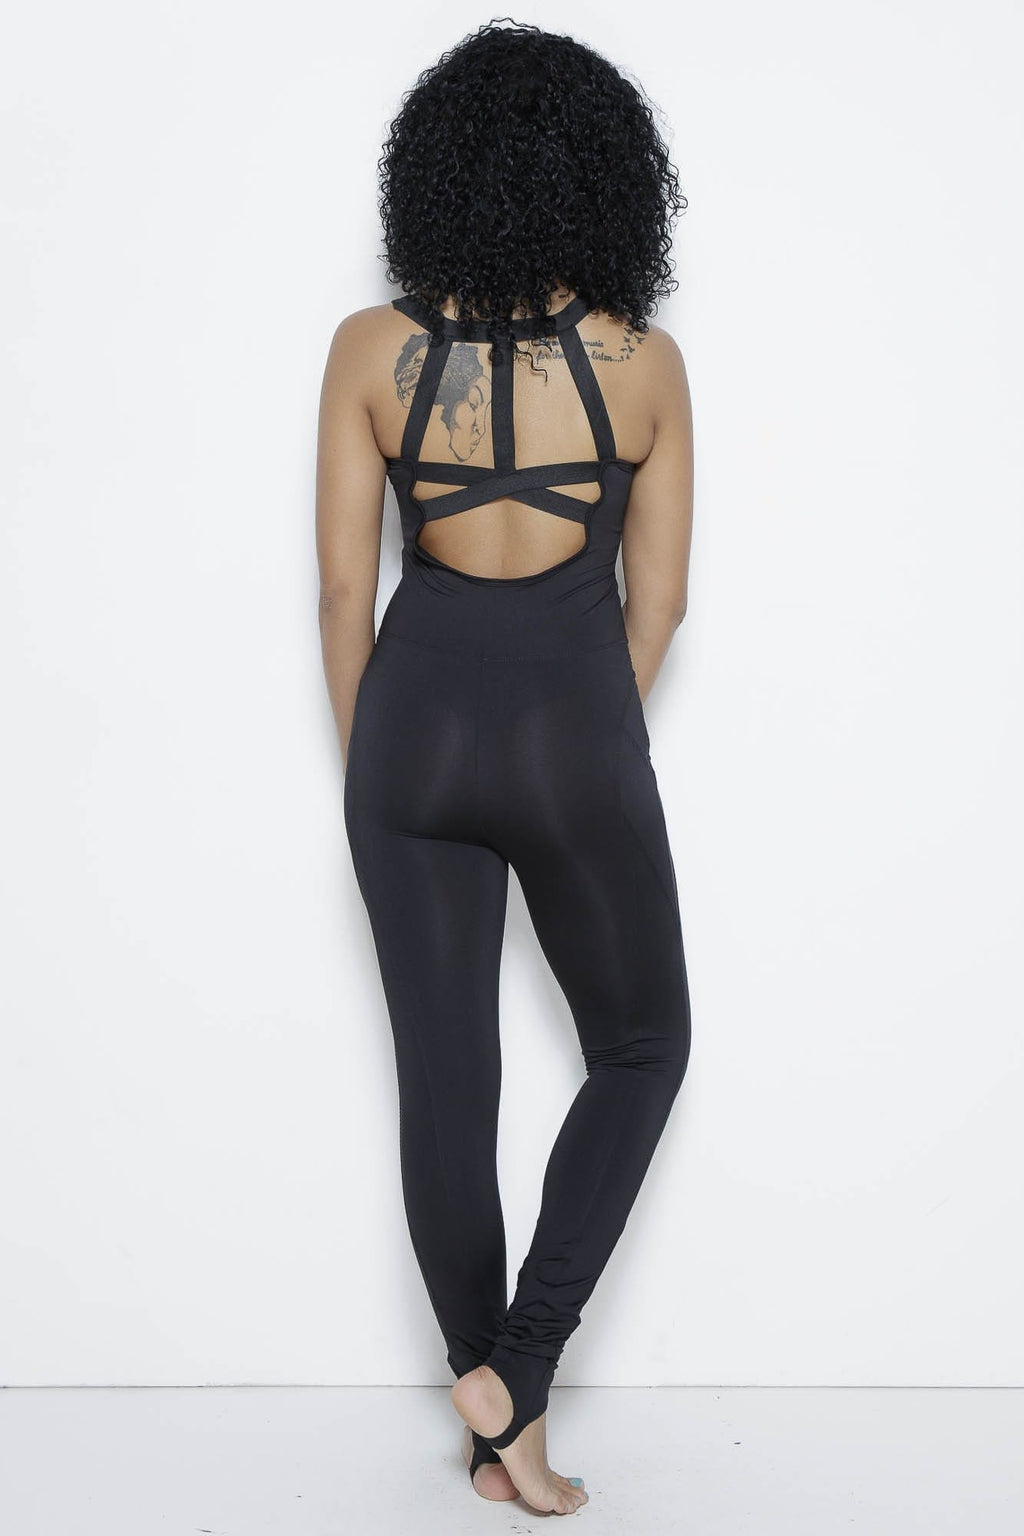 MSFIT Jumpsuit-Black Clothing Fair Shade